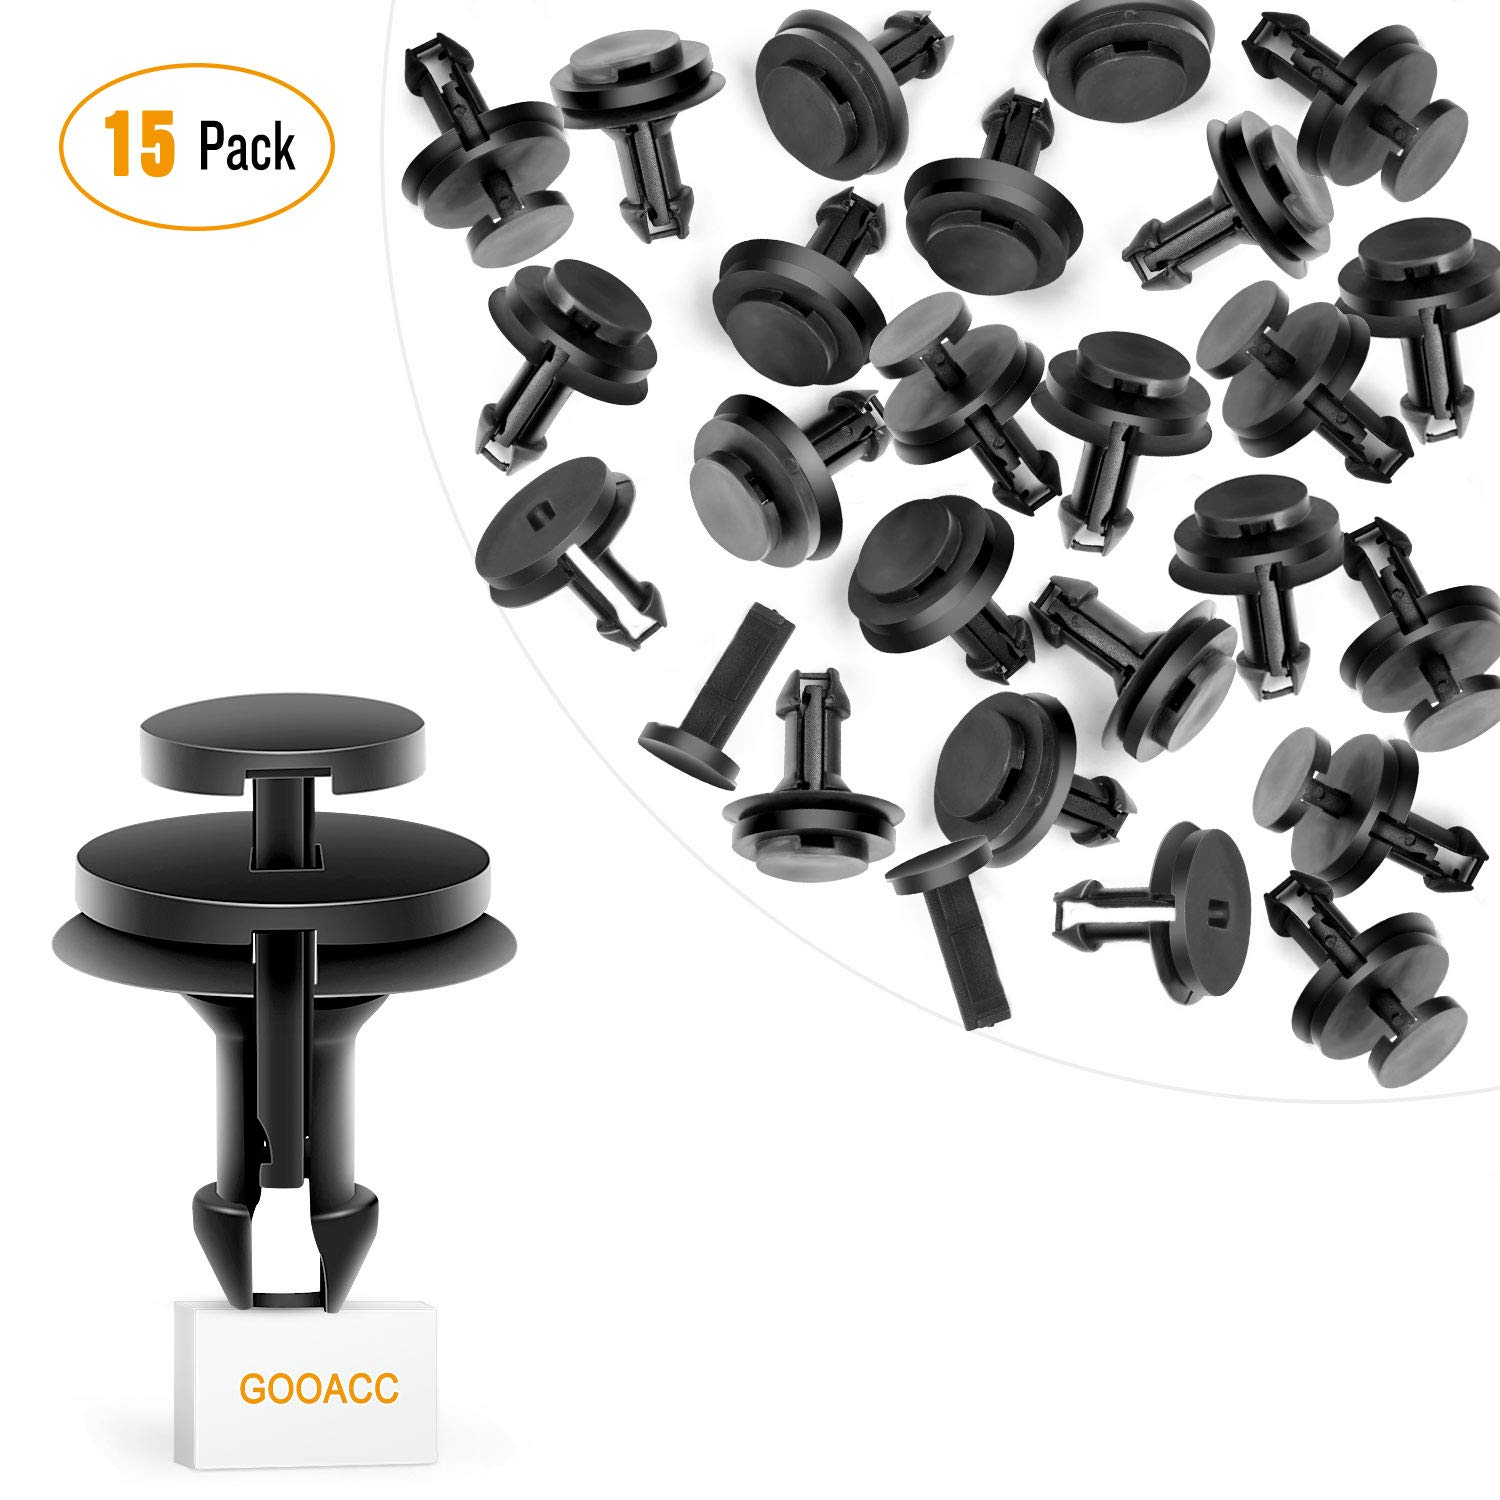 GOOACC GM Front Air Deflector Retainers Clips 15733971 for GM Chevrolet 15733971-15PCS GRC-17